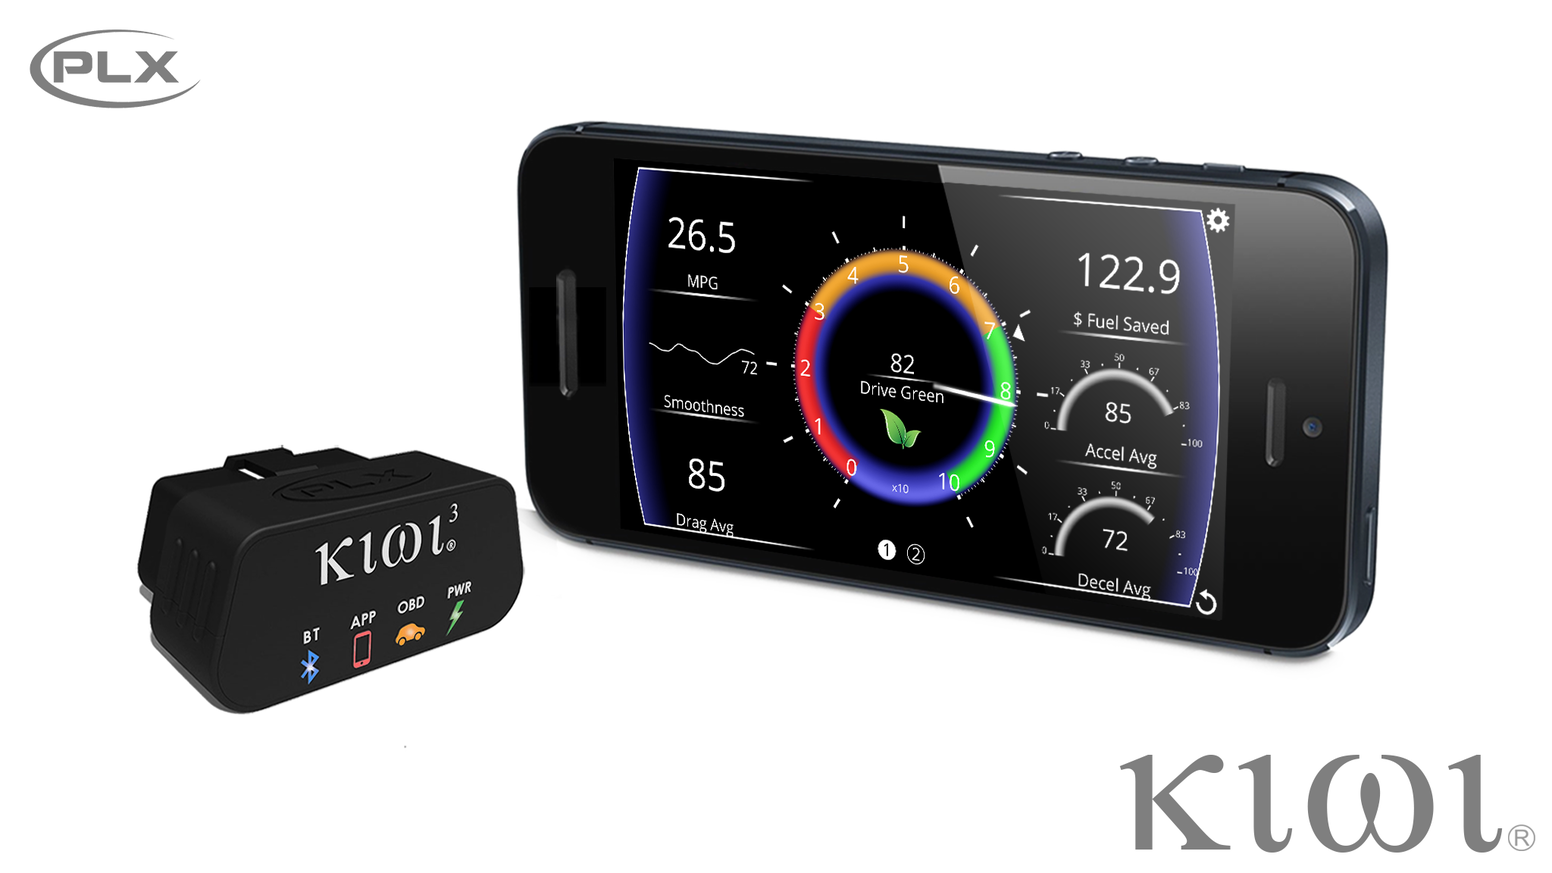 Kiwi - OBD Car Connected App Reinvented by PLX Devices